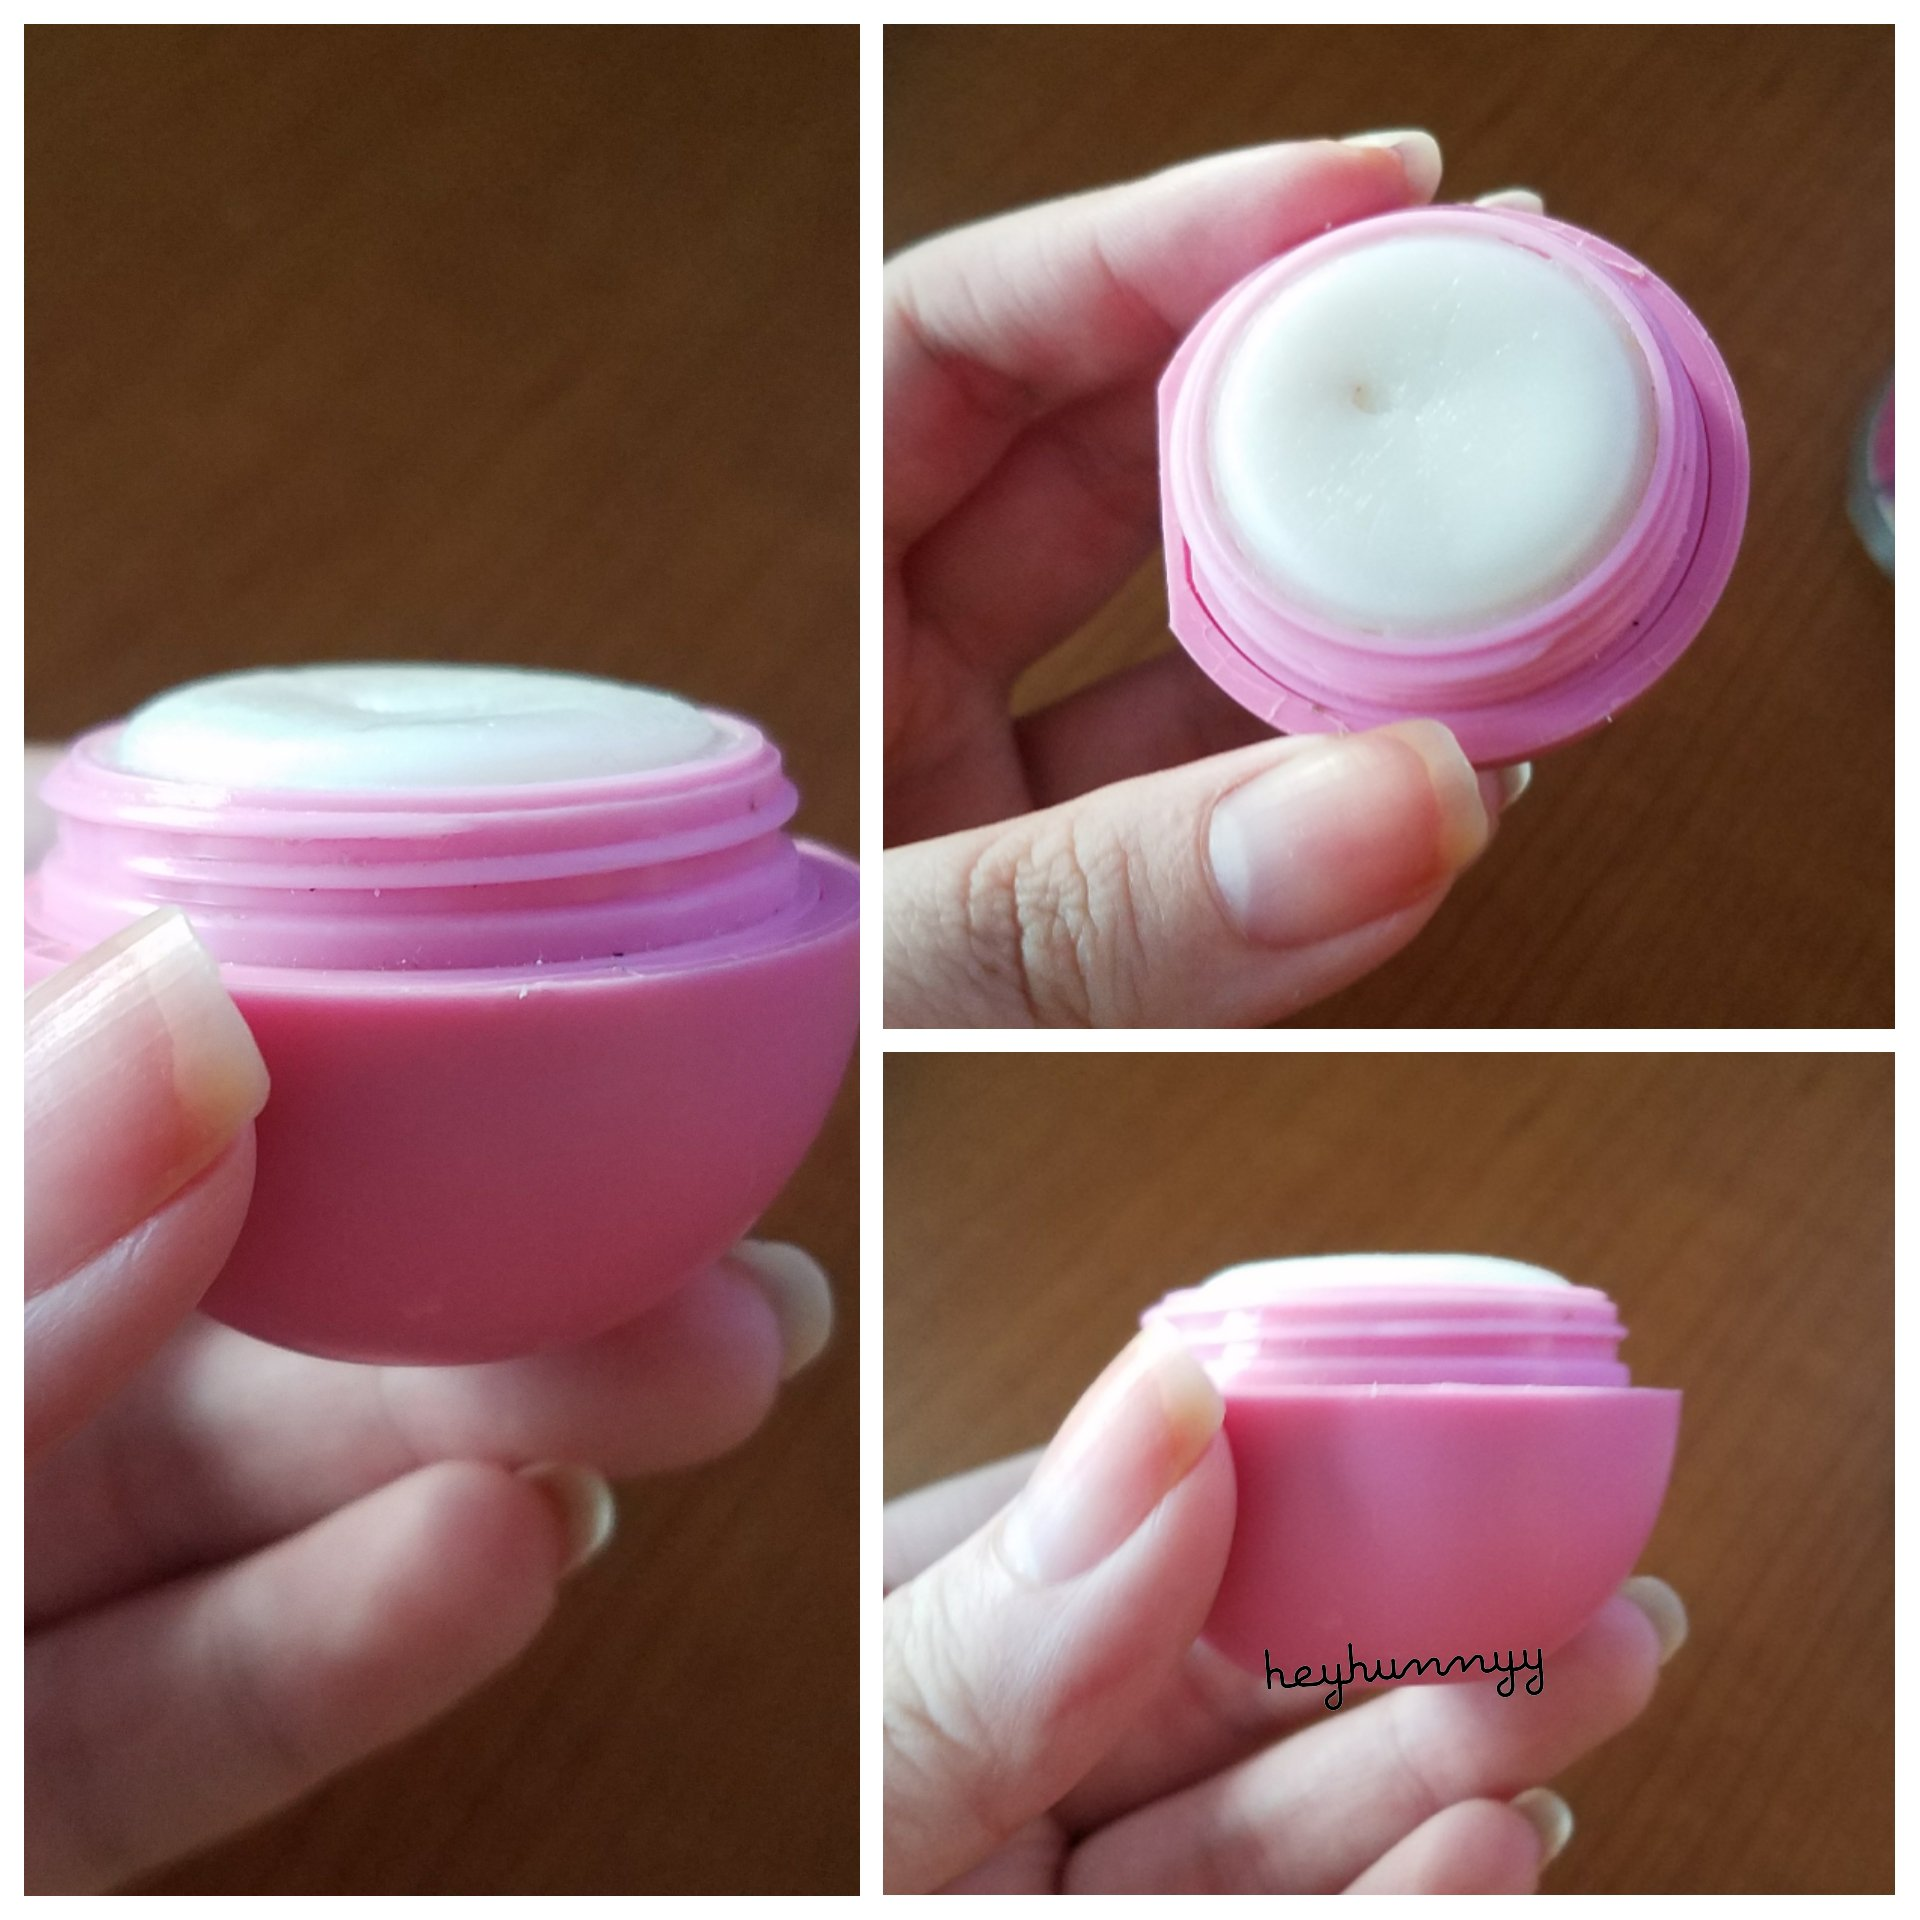 ::STRUGGLES:: What Do I Do With My Old Lipbalm?